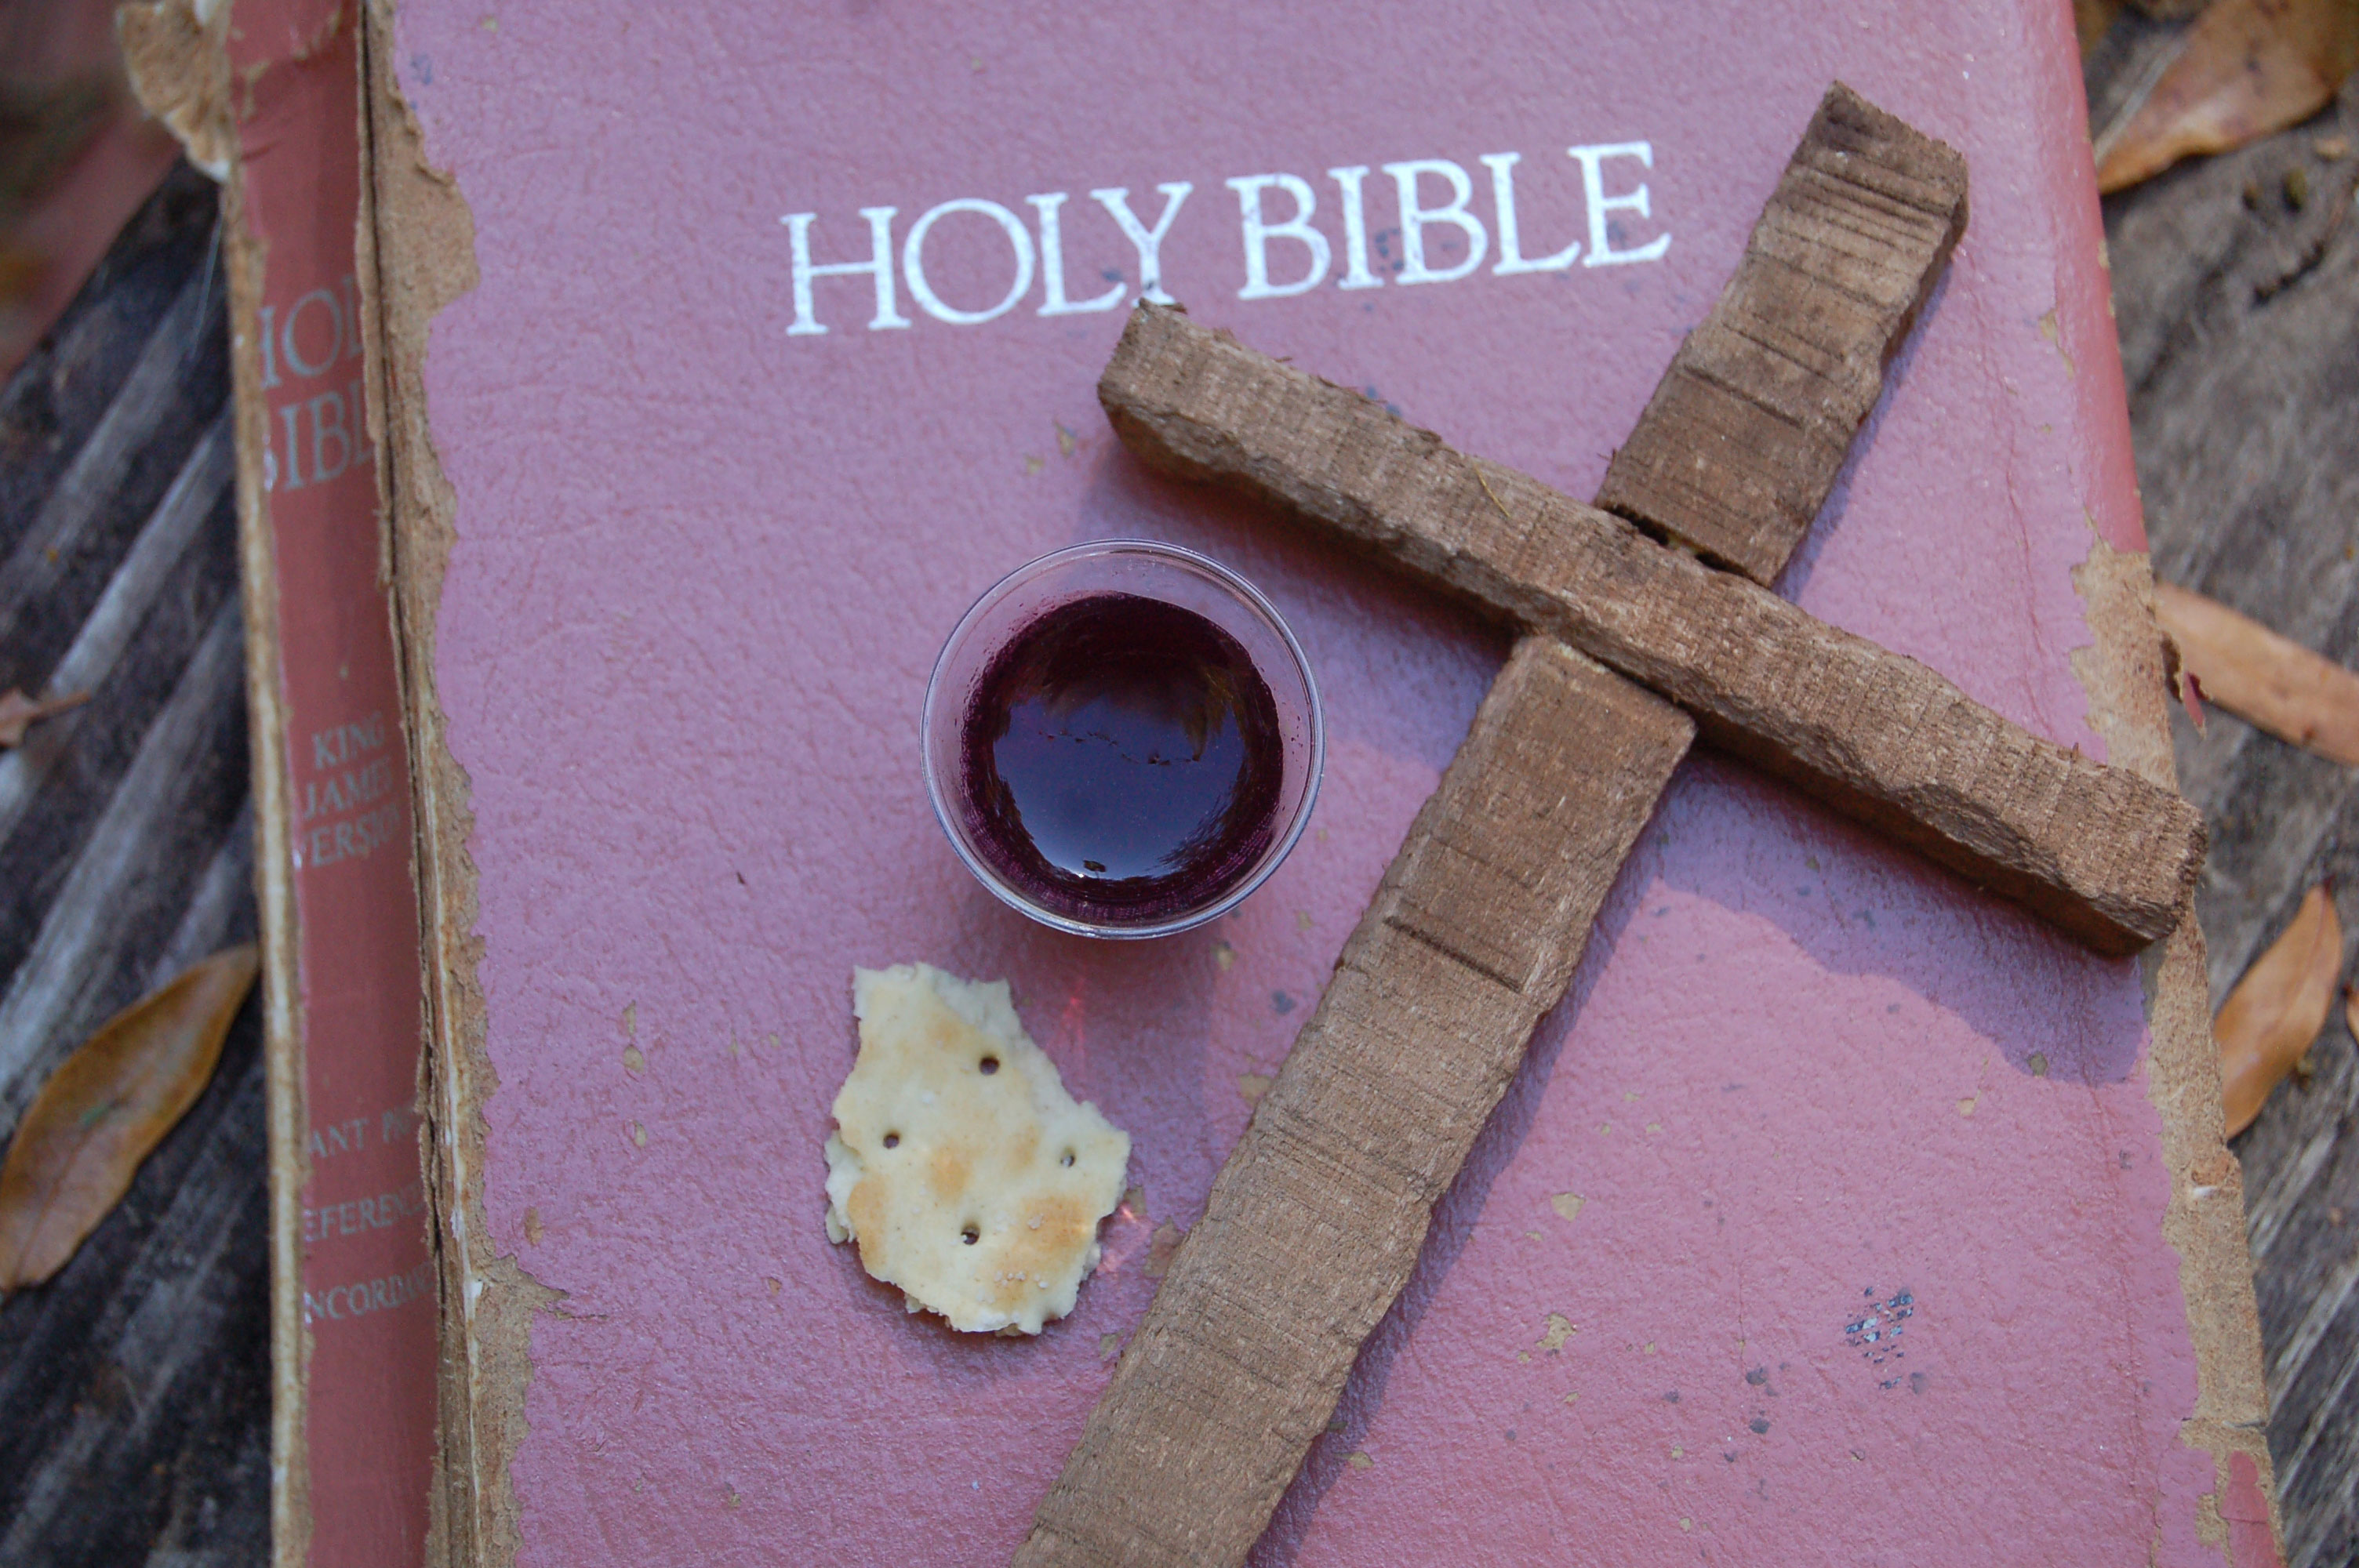 Christian Stock Photos by Linda Bateman - Wood Cross with Communion Emblems on Bible Cover